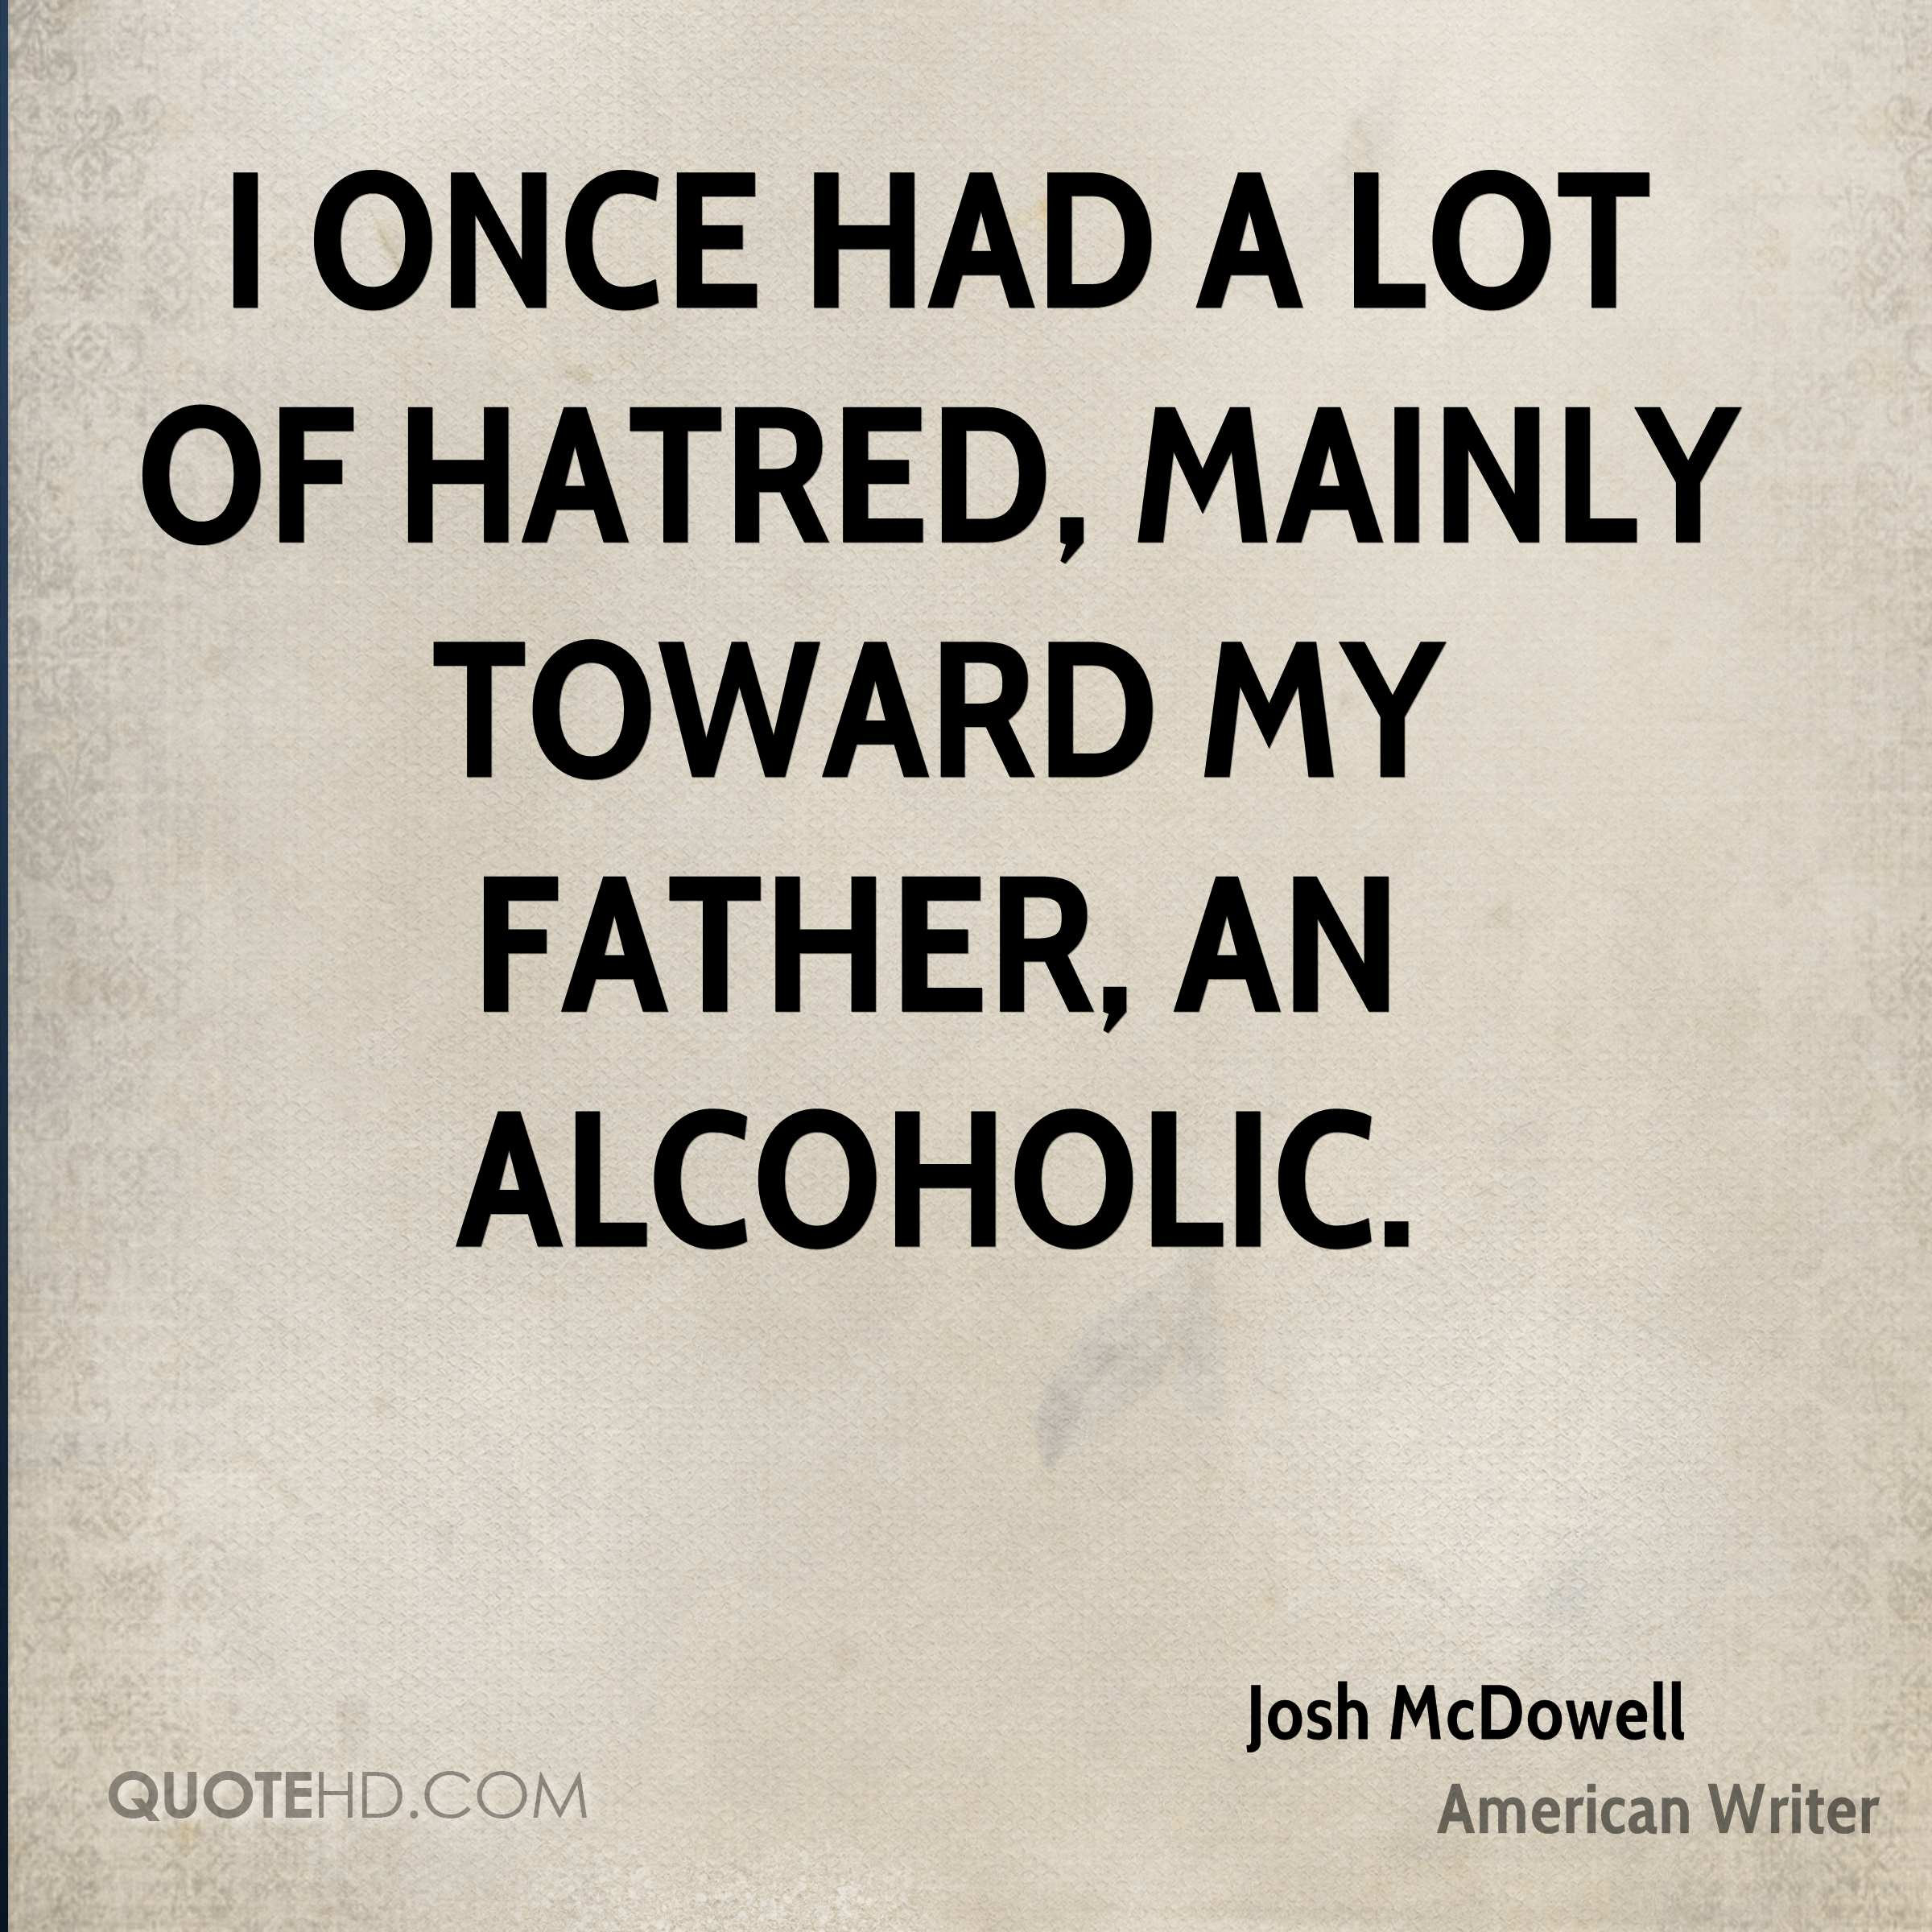 I once had a lot of hatred, mainly toward my father, an alcoholic.